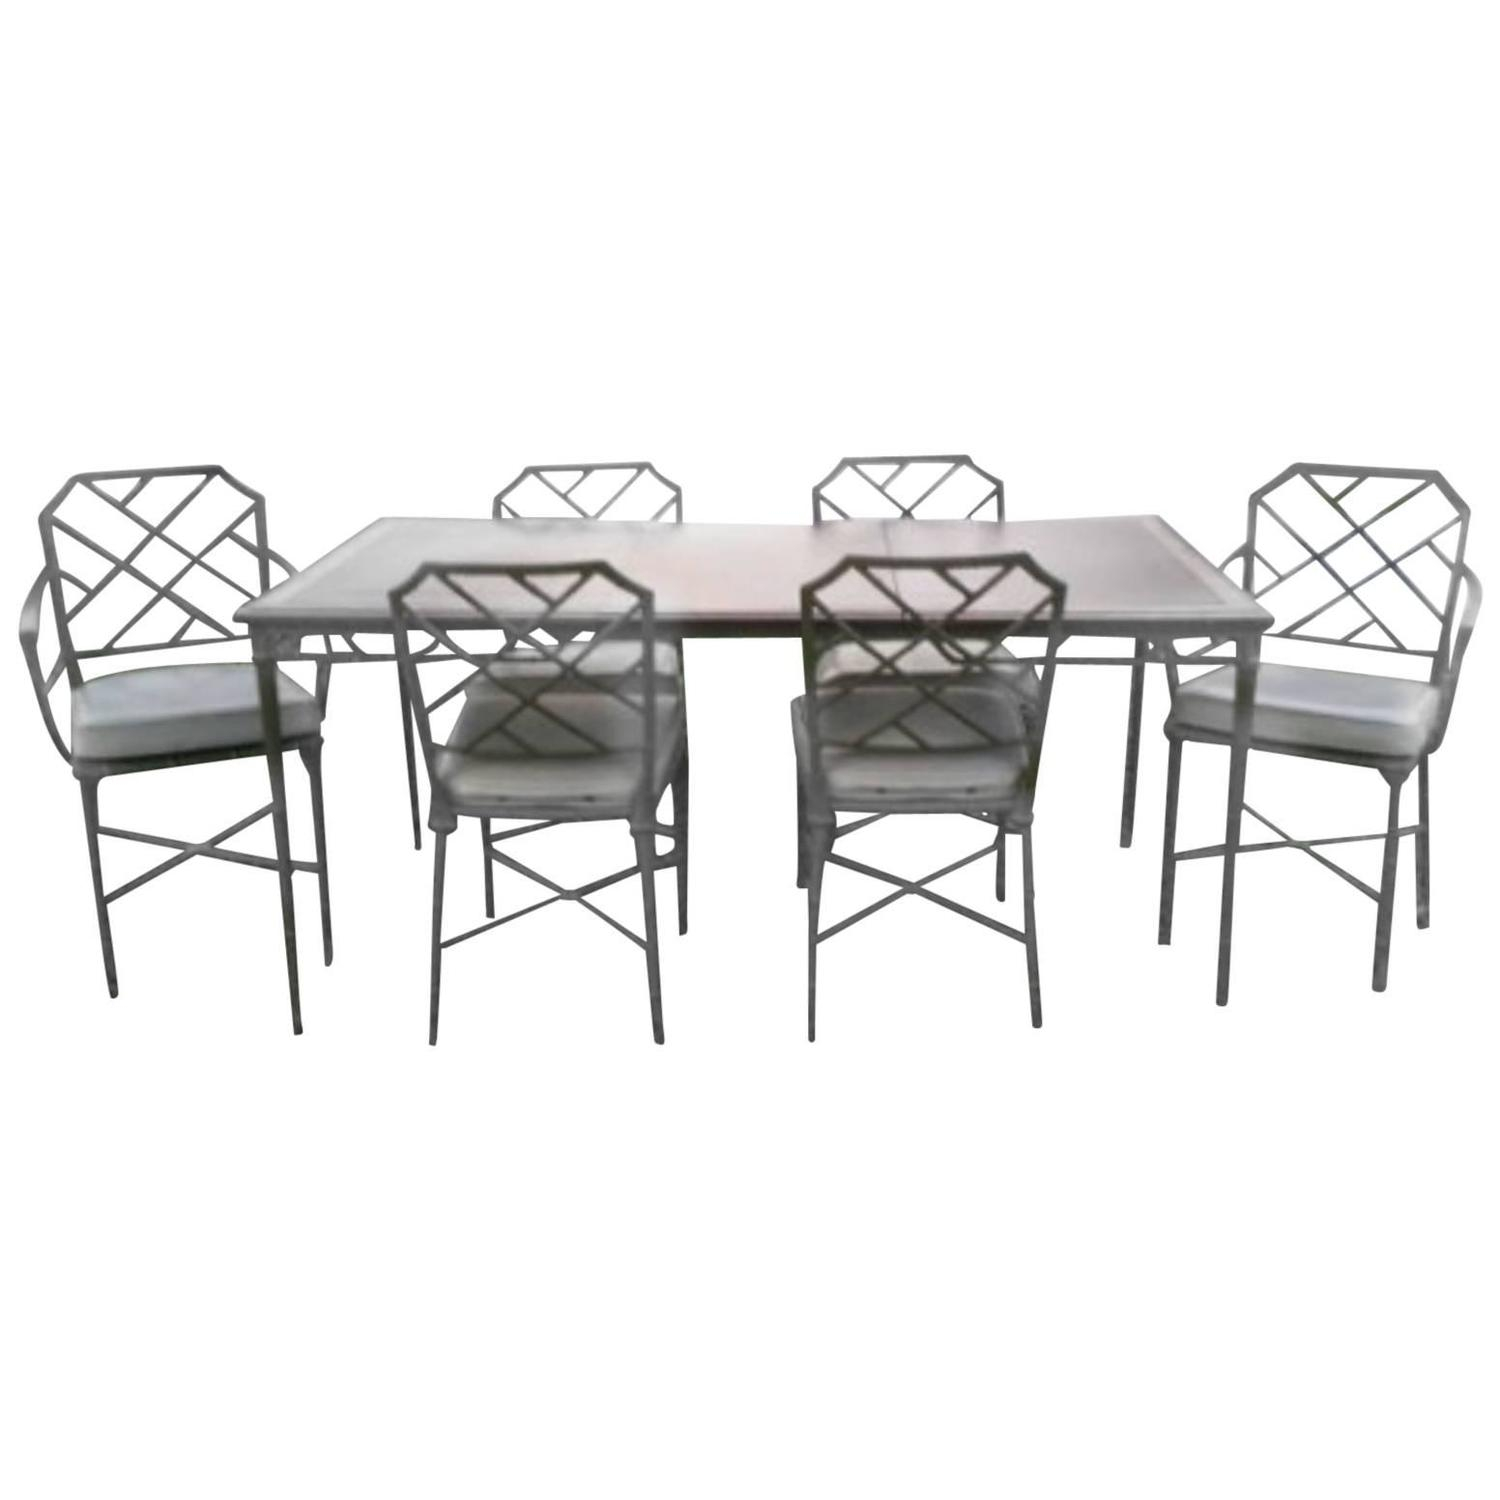 Jordans Dining Sets Palazzodalcarlo for size 1500 X 1500